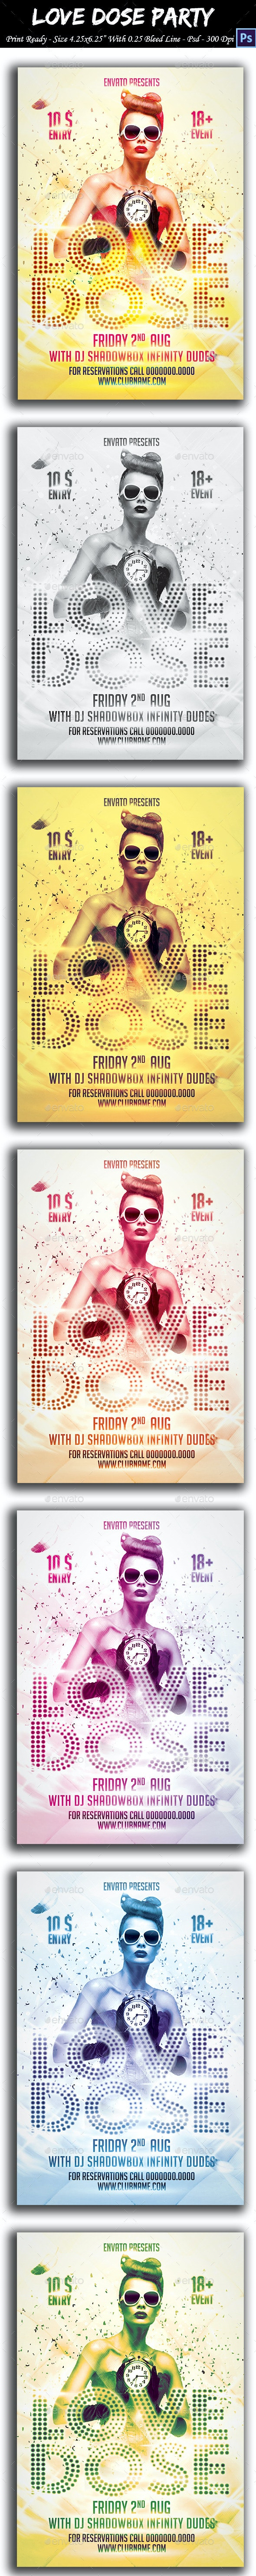 Love Dose Party Flyer - Clubs & Parties Events